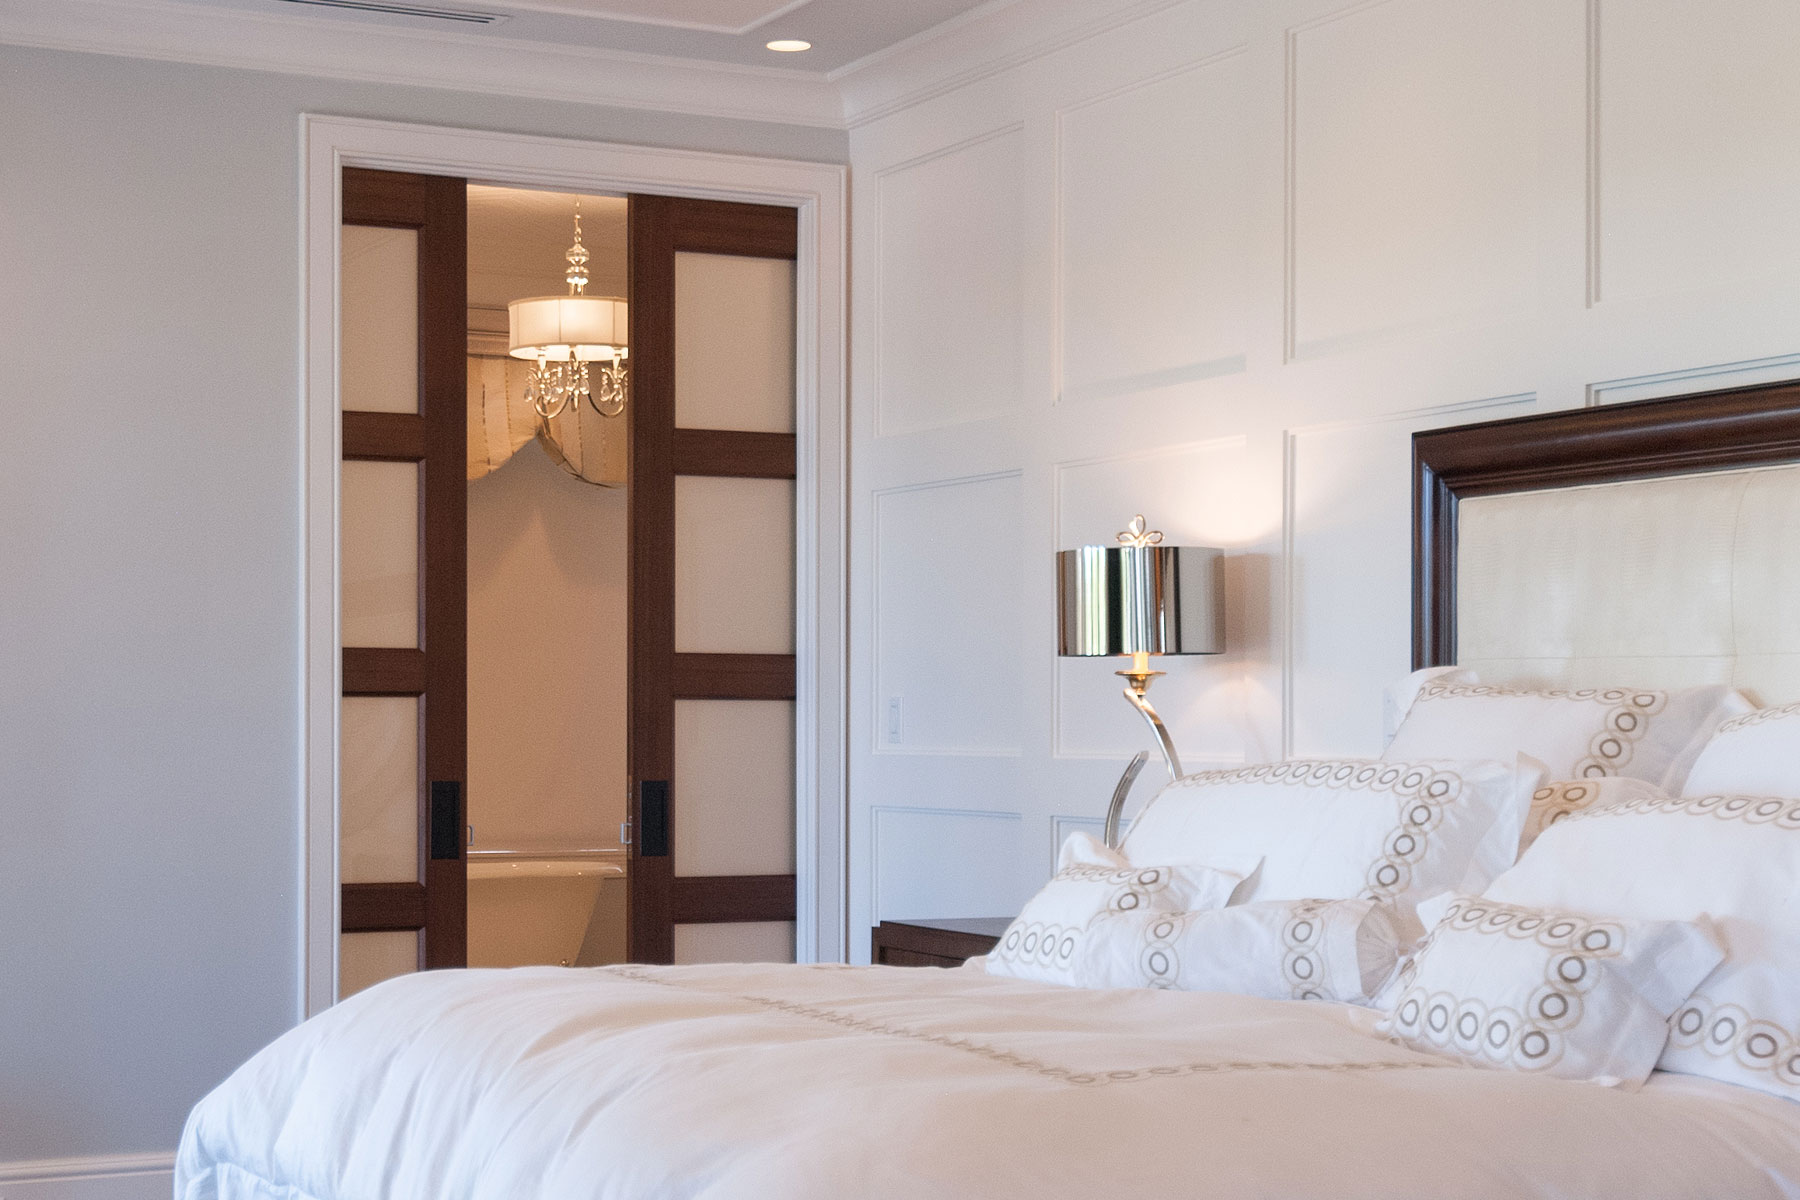 TS4100 interior pocket doors in mahogany with frosted glass